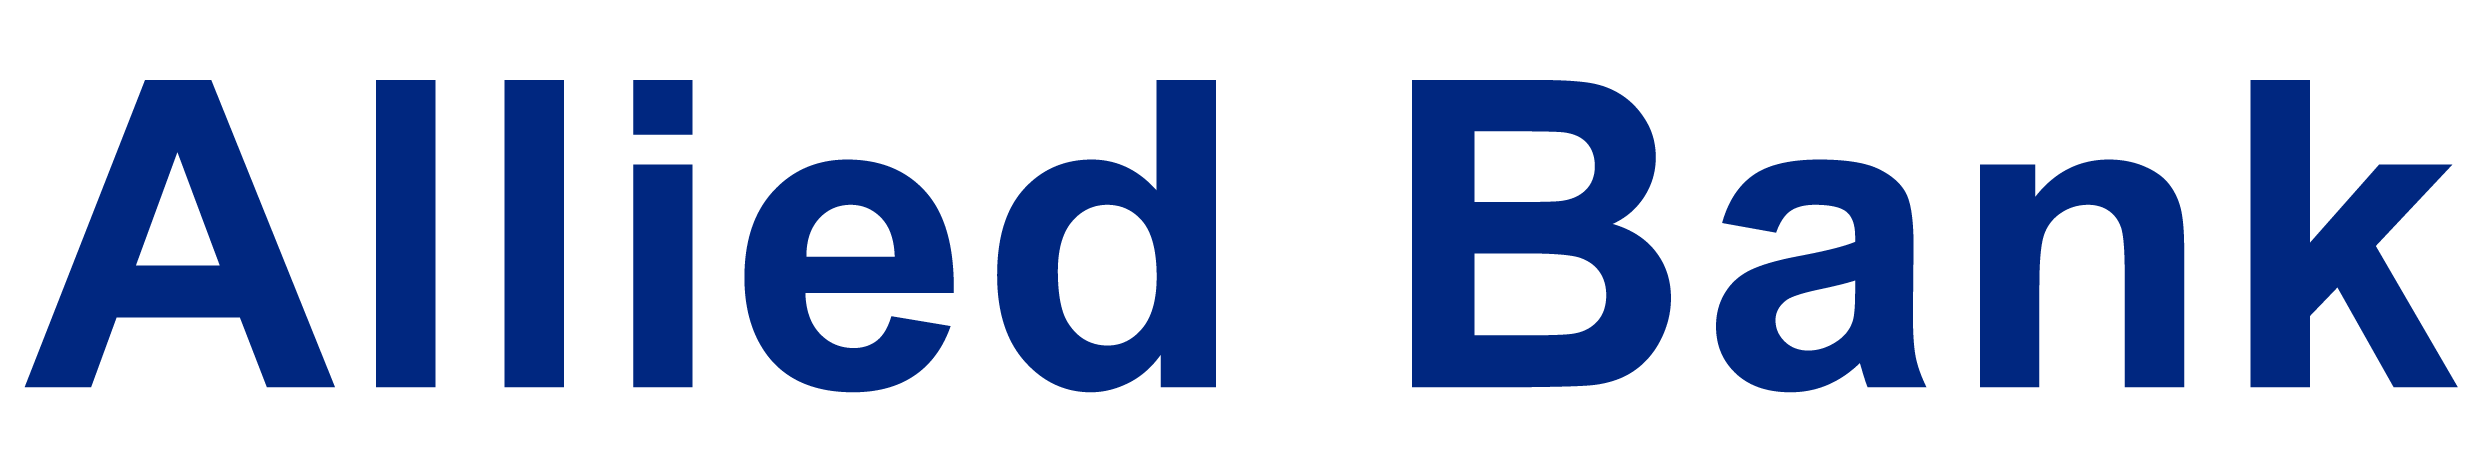 Allied Bank